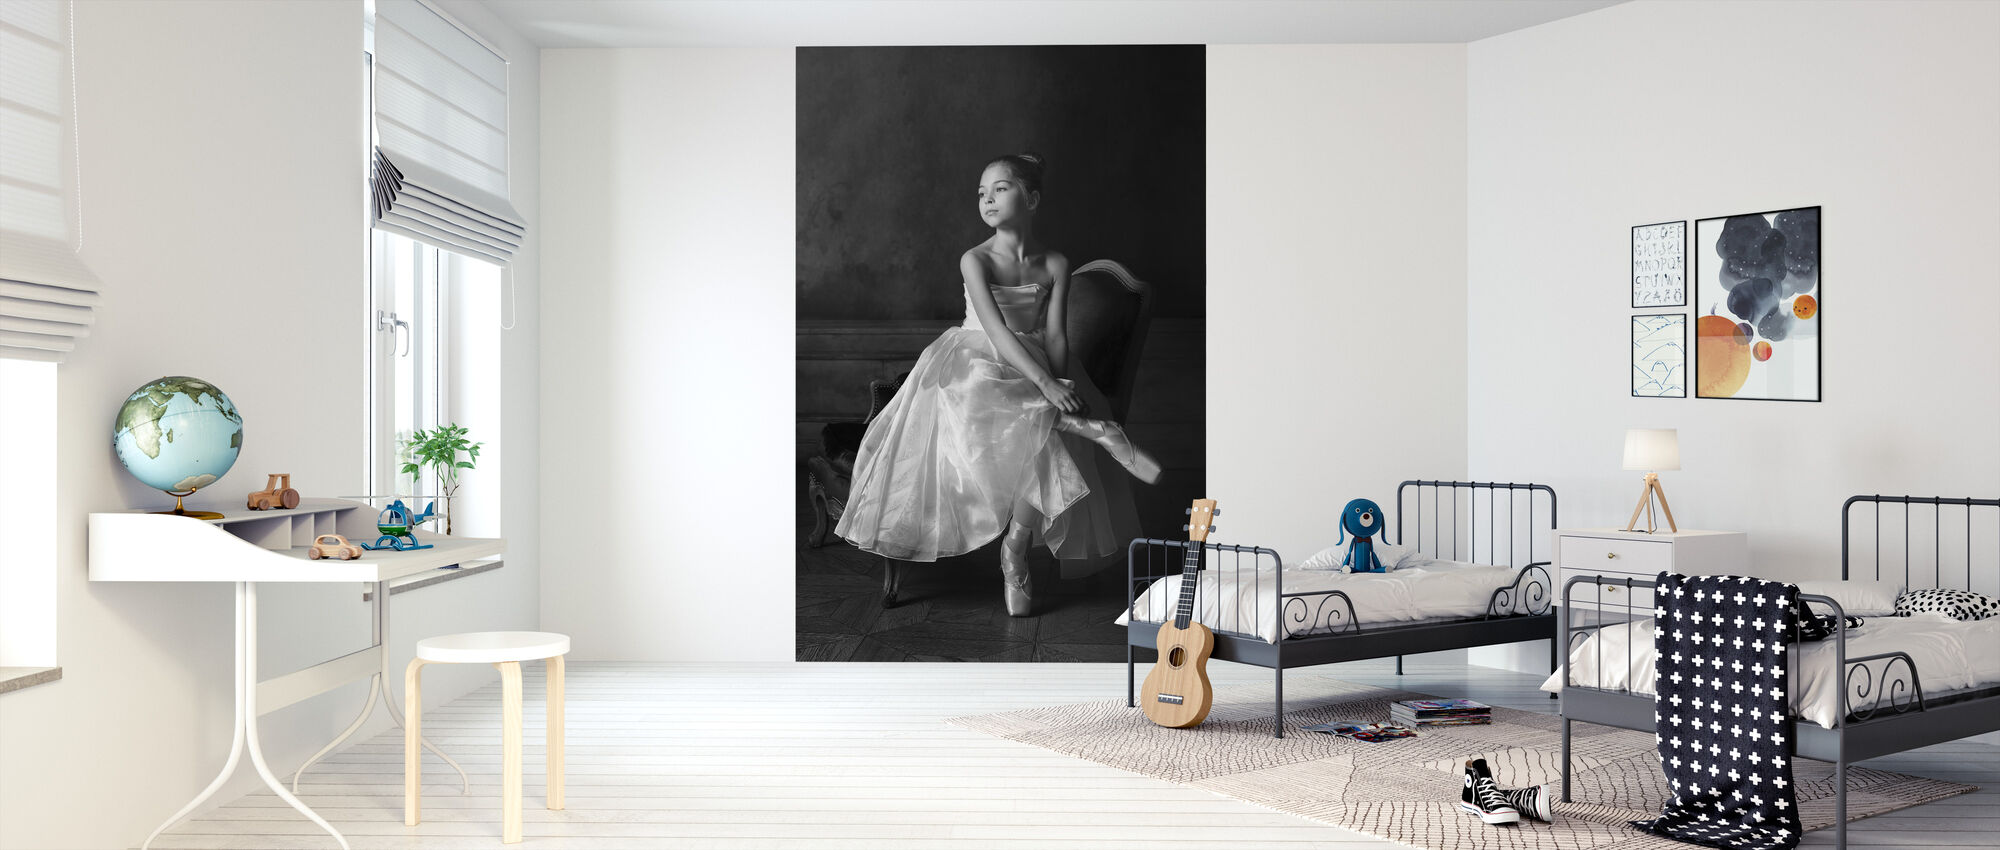 Little Ballet Star - Wallpaper - Kids Room